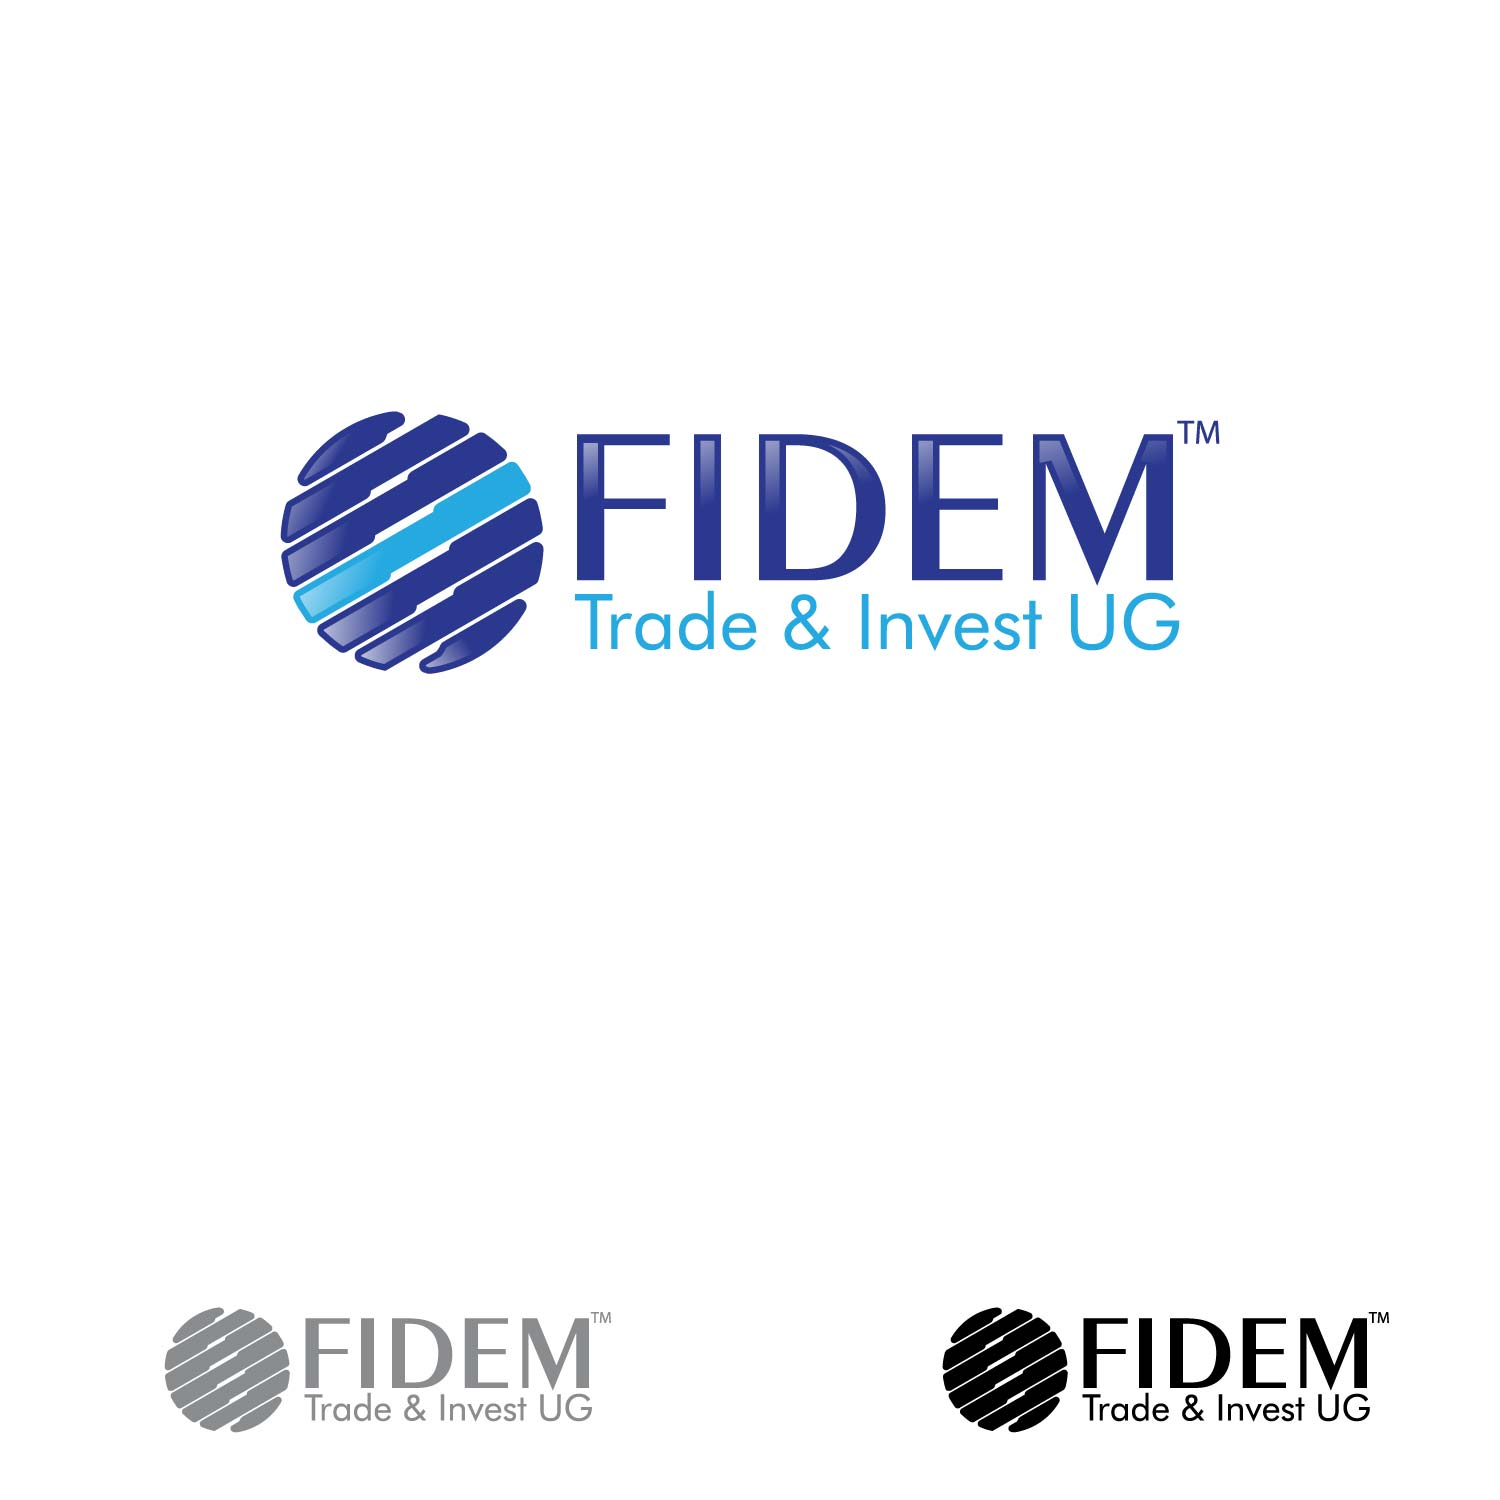 Logo Design by lagalag - Entry No. 106 in the Logo Design Contest Professional Logo Design for FIDEM Trade & Invest UG.